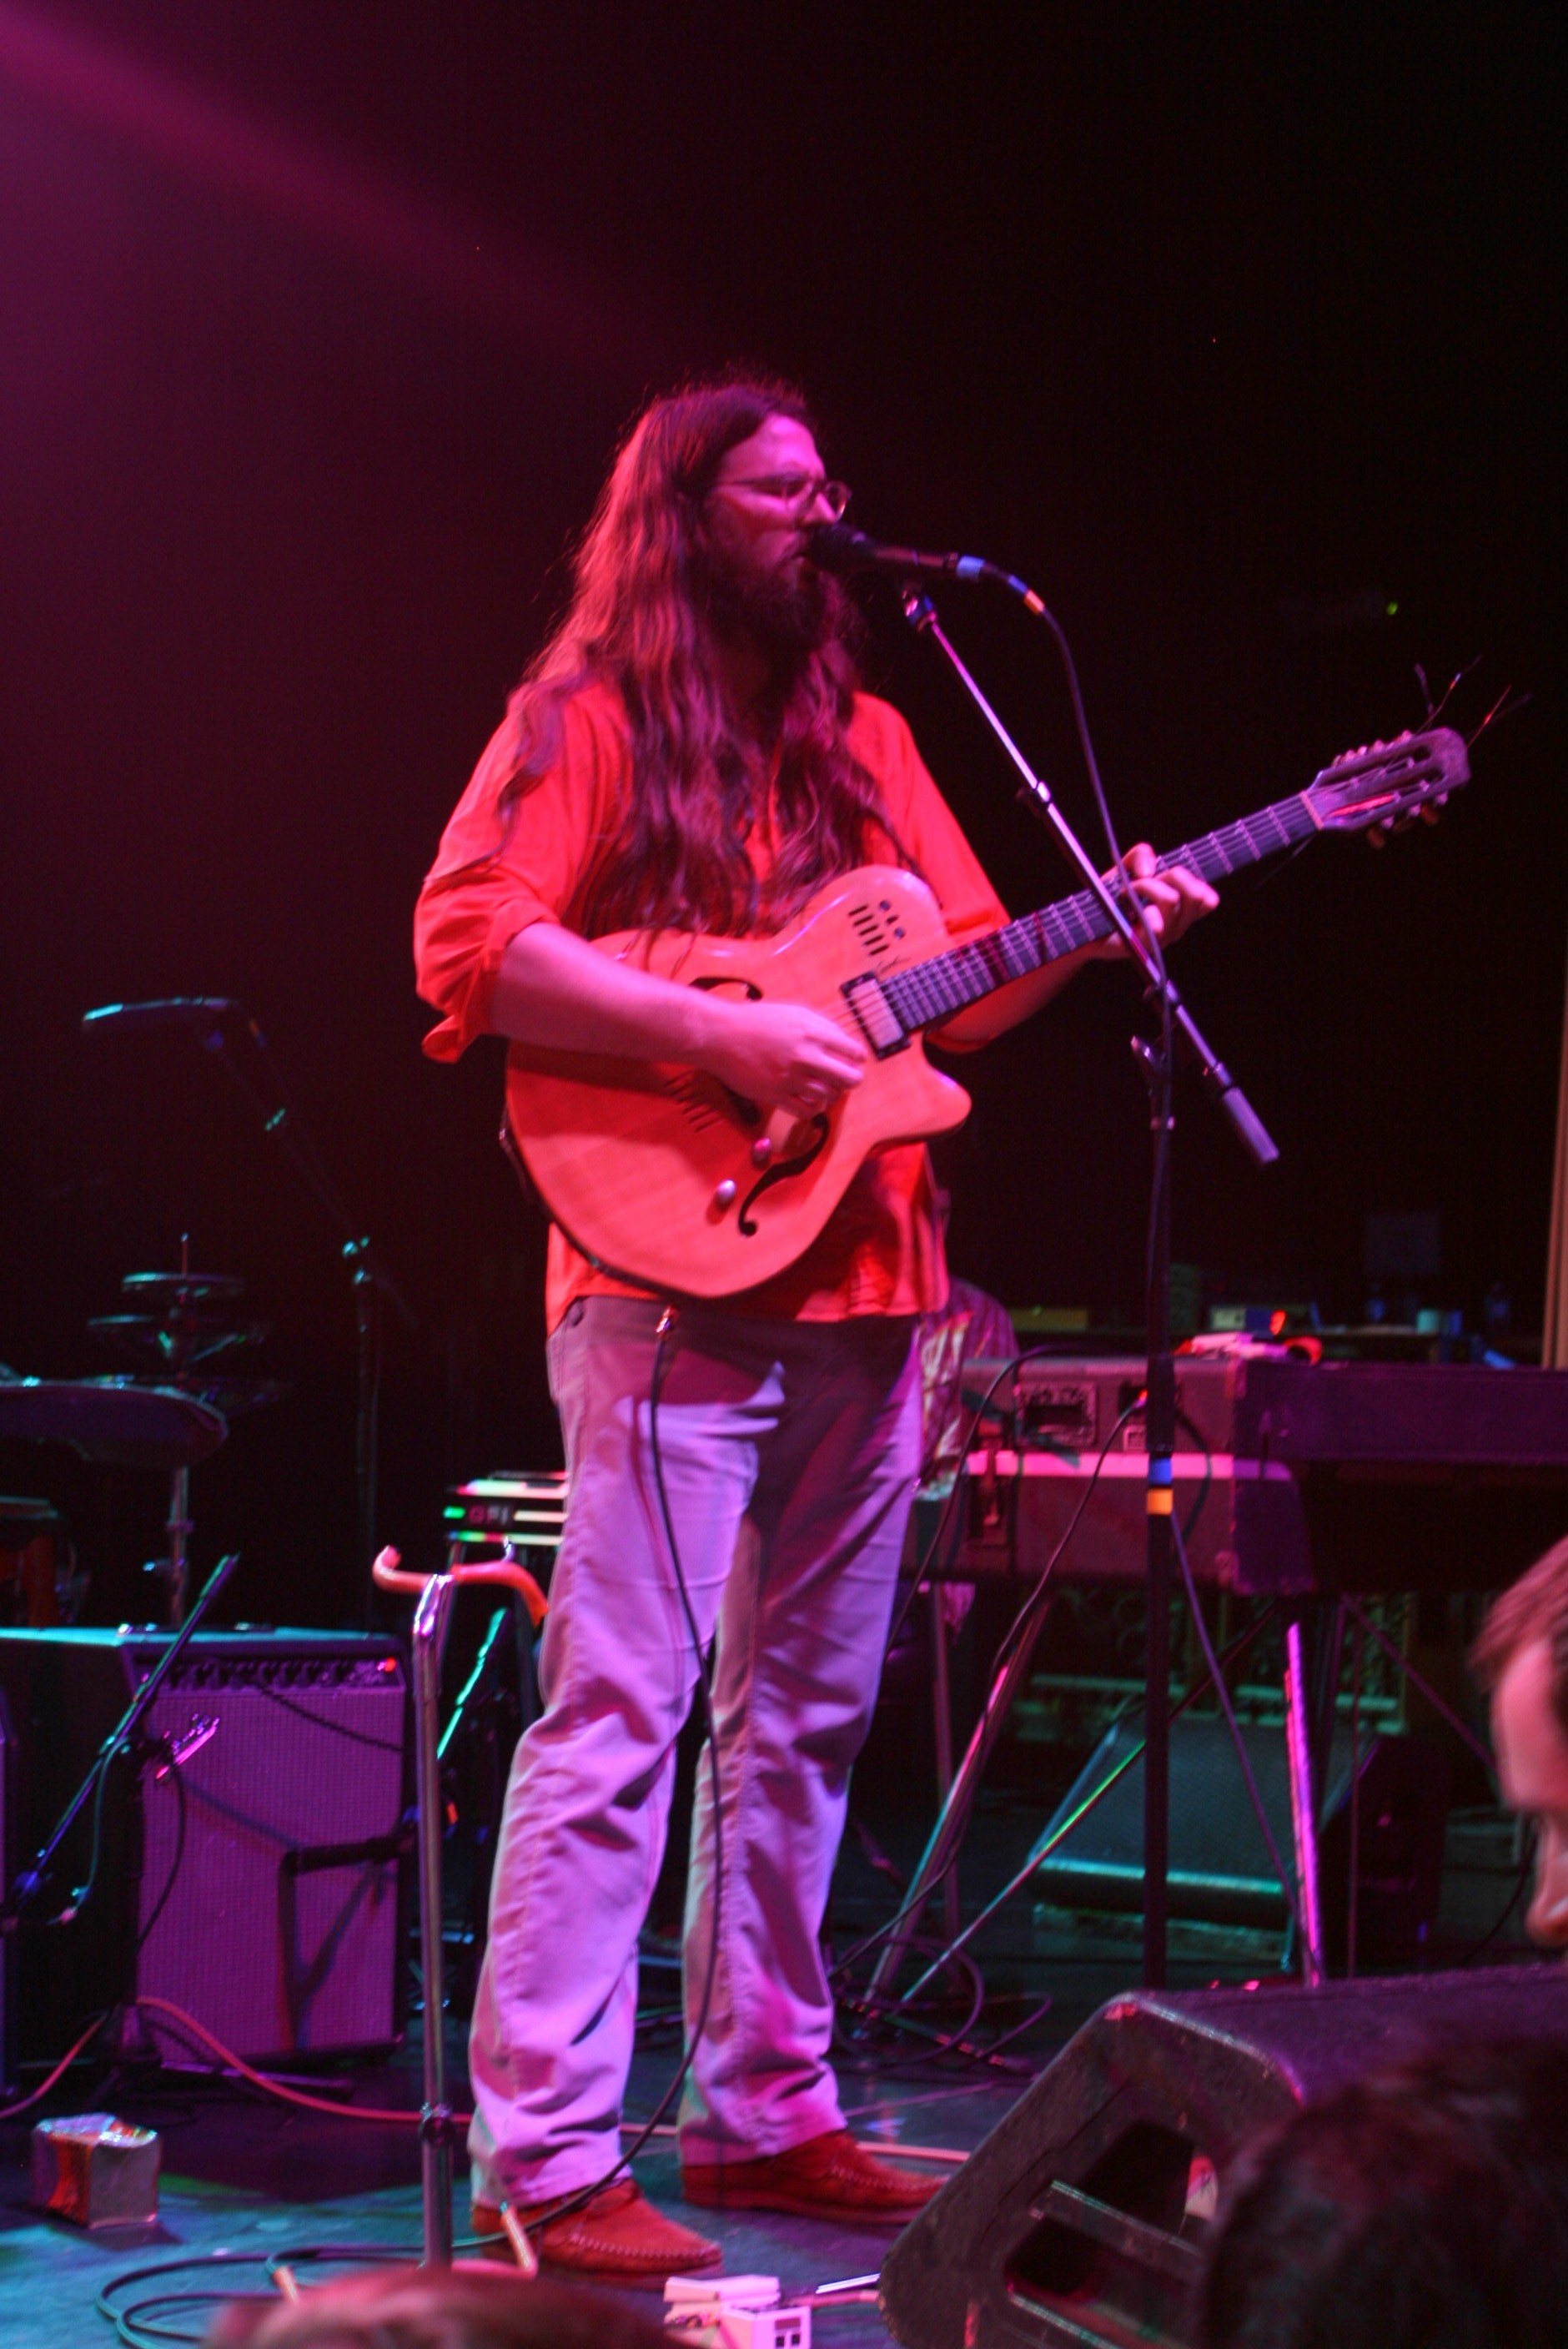 Matthew E. White performs at the National Oct. 9. - PETER MCELHINNEY